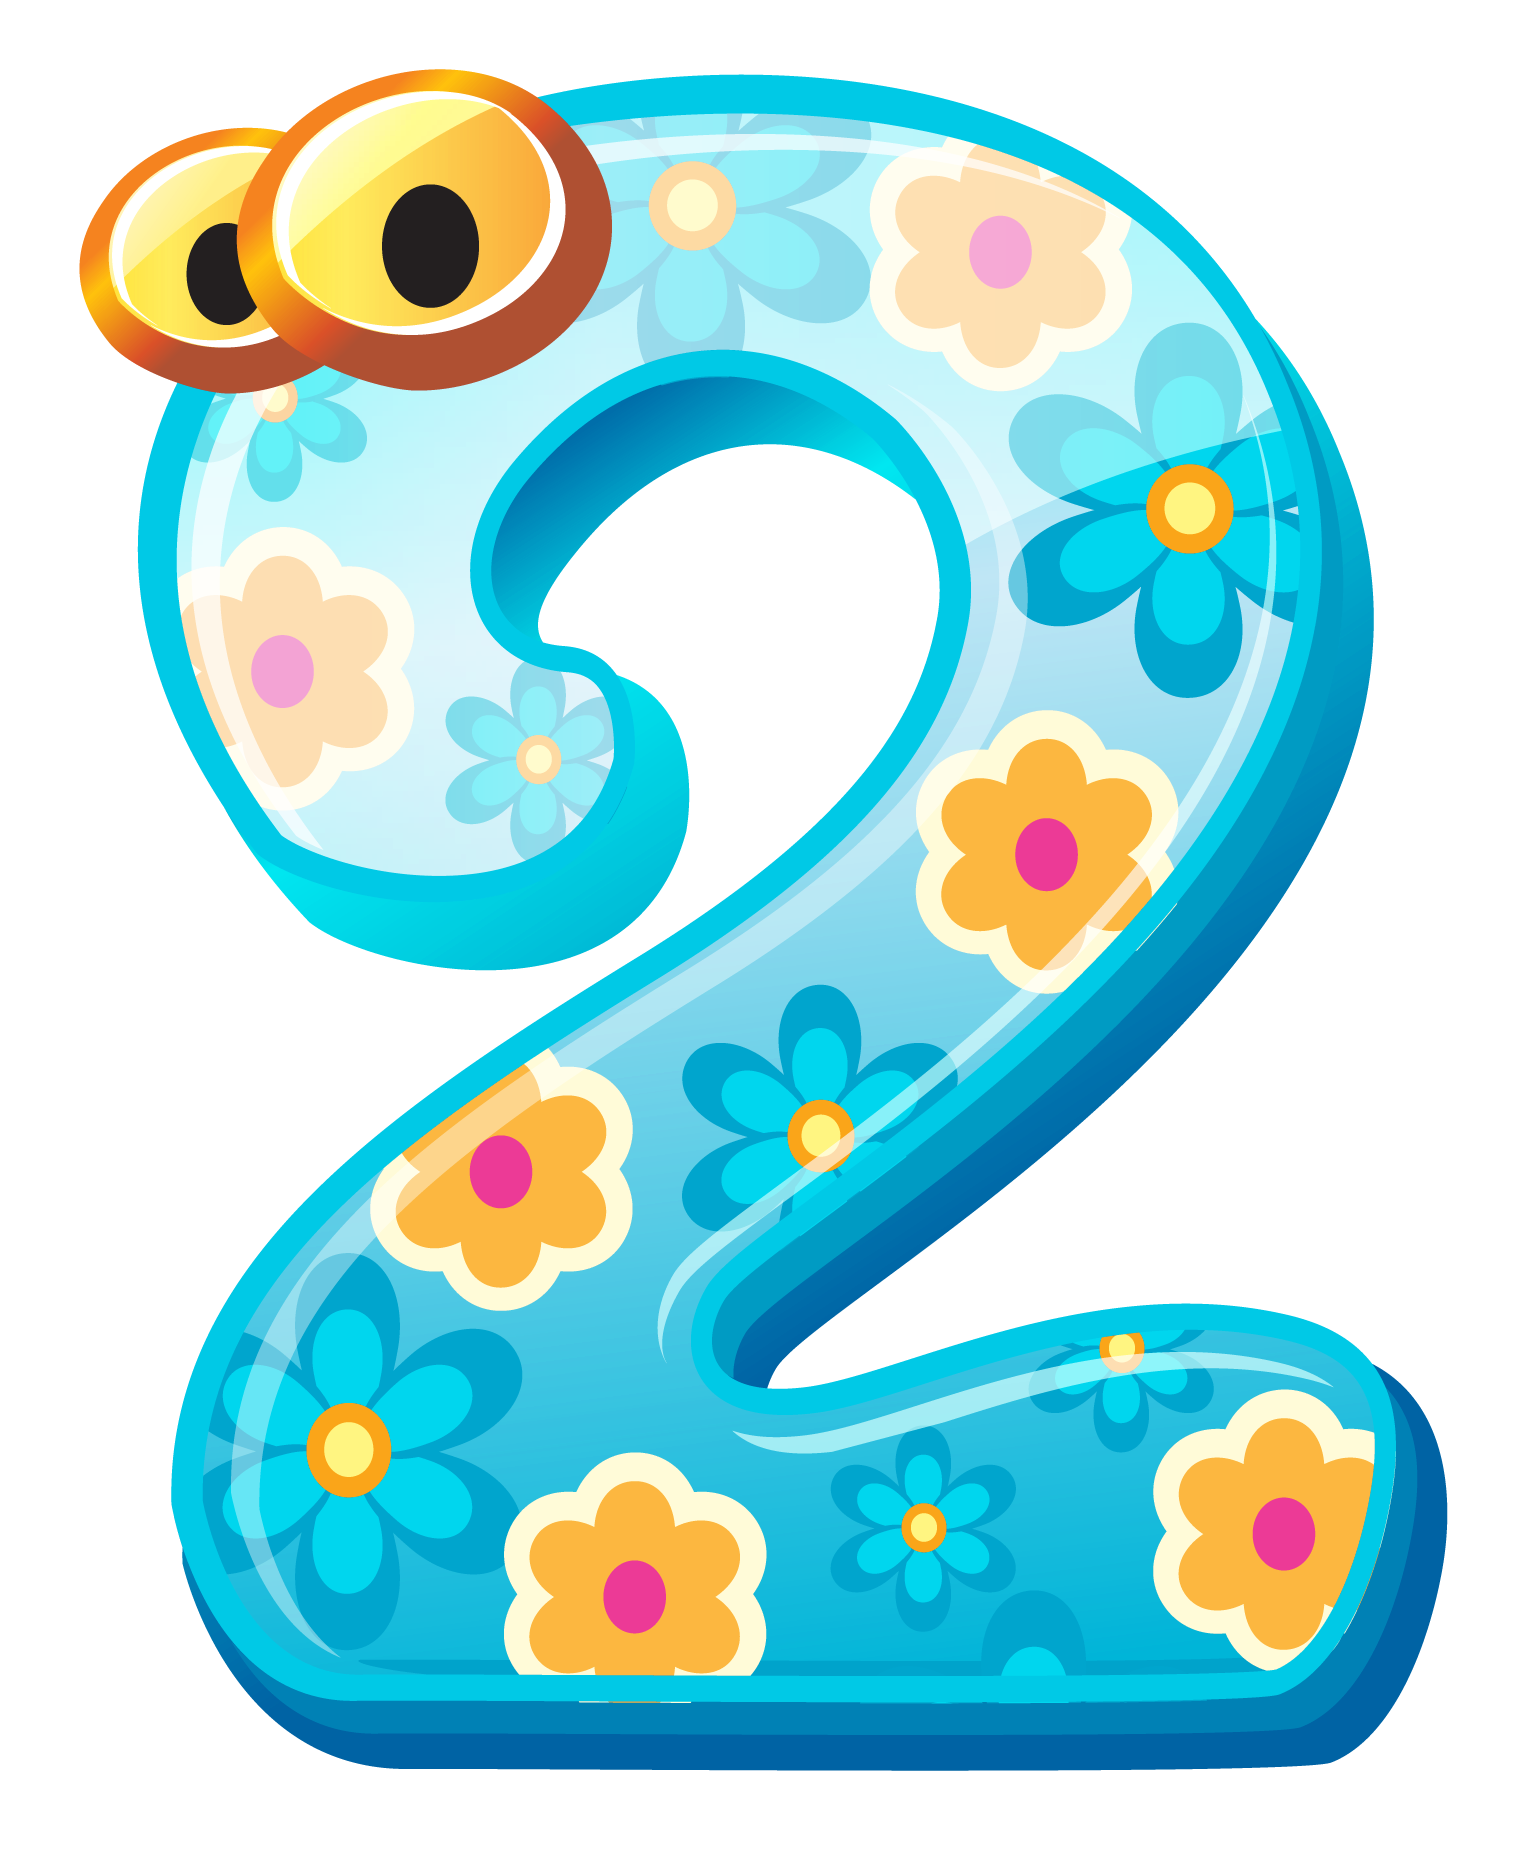 Numbers clipart png. Cute number two image